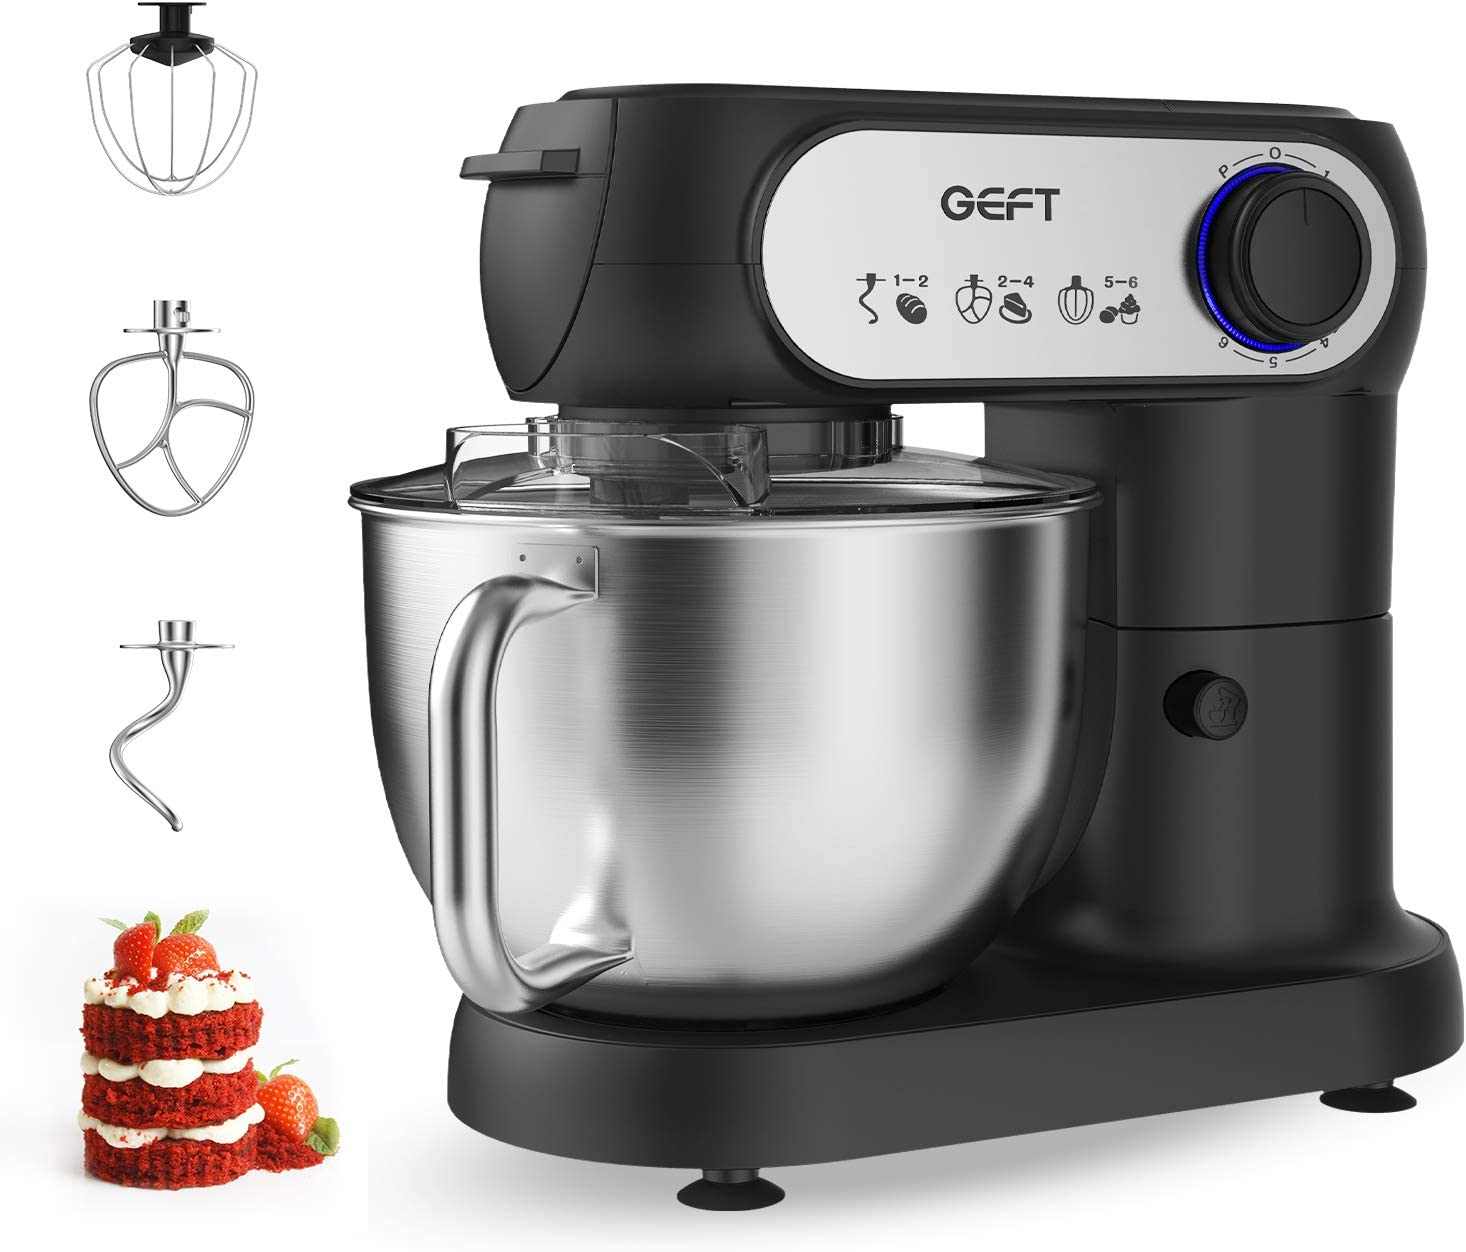 Stand Mixer- GEFT 6-Speed Electric Food Mixer with 5.8QT Stainless Steel Mixing Bowl, Kitchen Mixer with 600W Motor, Dough Hook, Mixing Beater, Wire Whisk, Splash Guard, Tilt-Head, Onyx Black